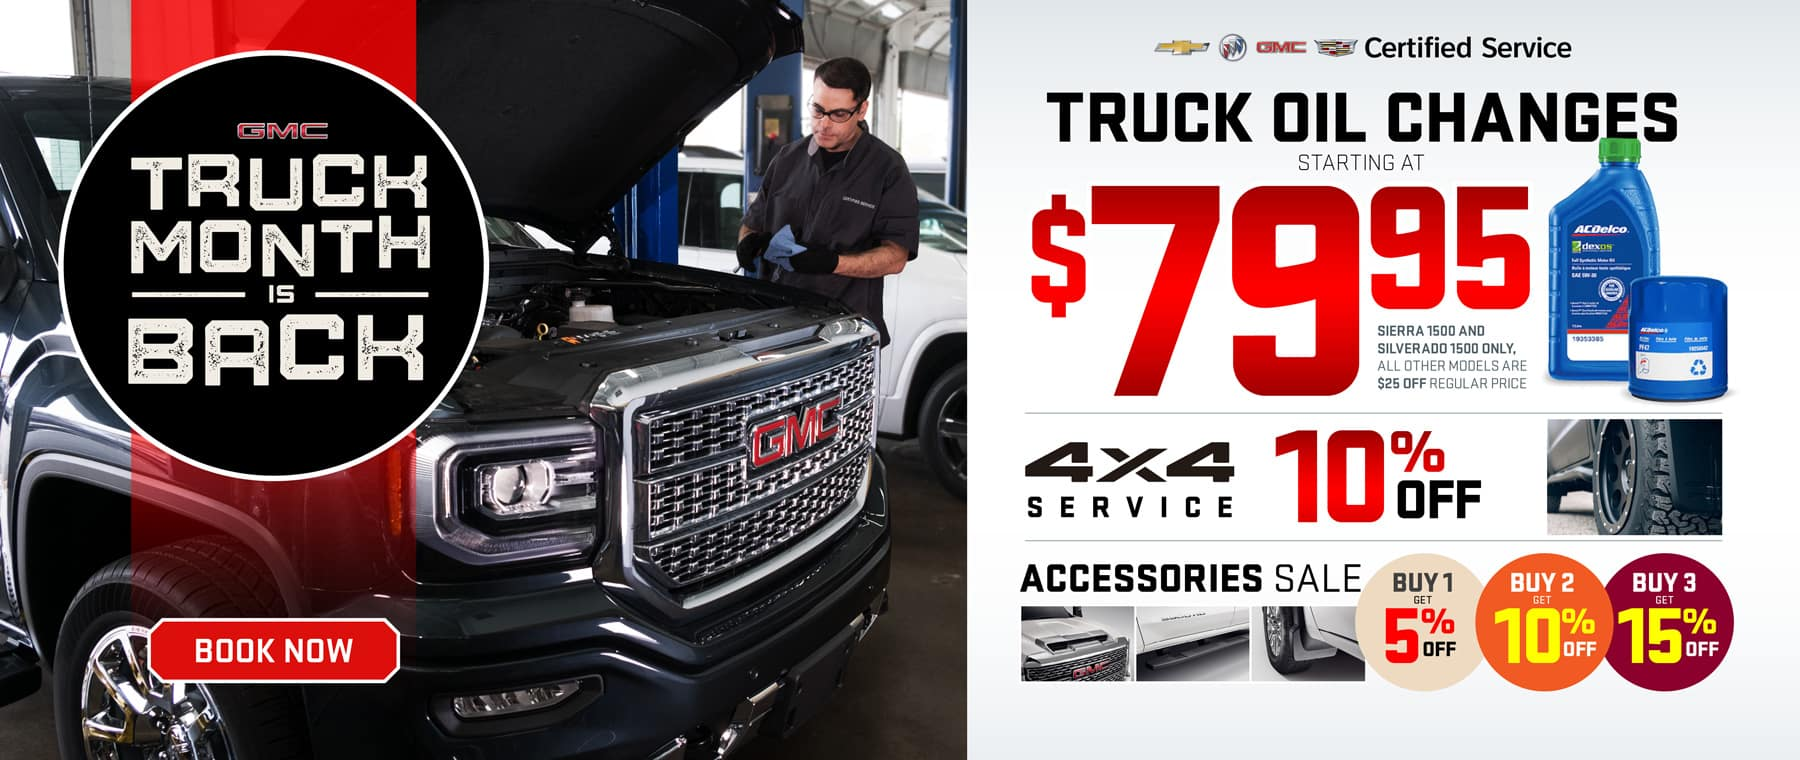 1525542_MCN_TruckMonth-Service_WB